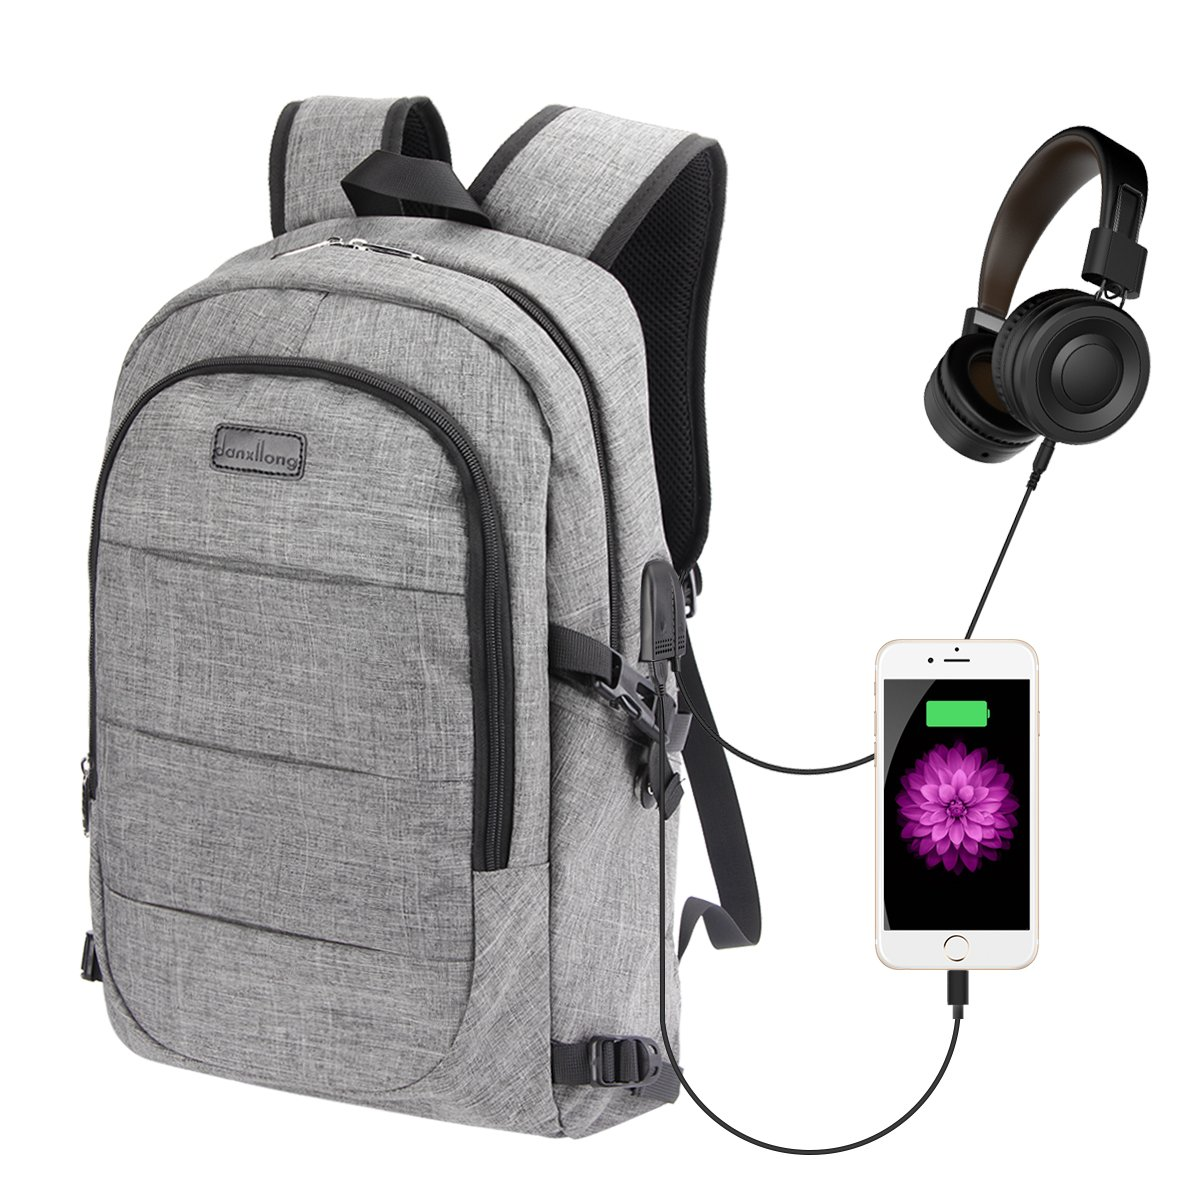 Laptop Backpack for Men, MEKUULA 15.9 Laptop Backpack with Charger, Computer Backpack with USB Charging Port and Headphone Interface for School Travel Business delicate